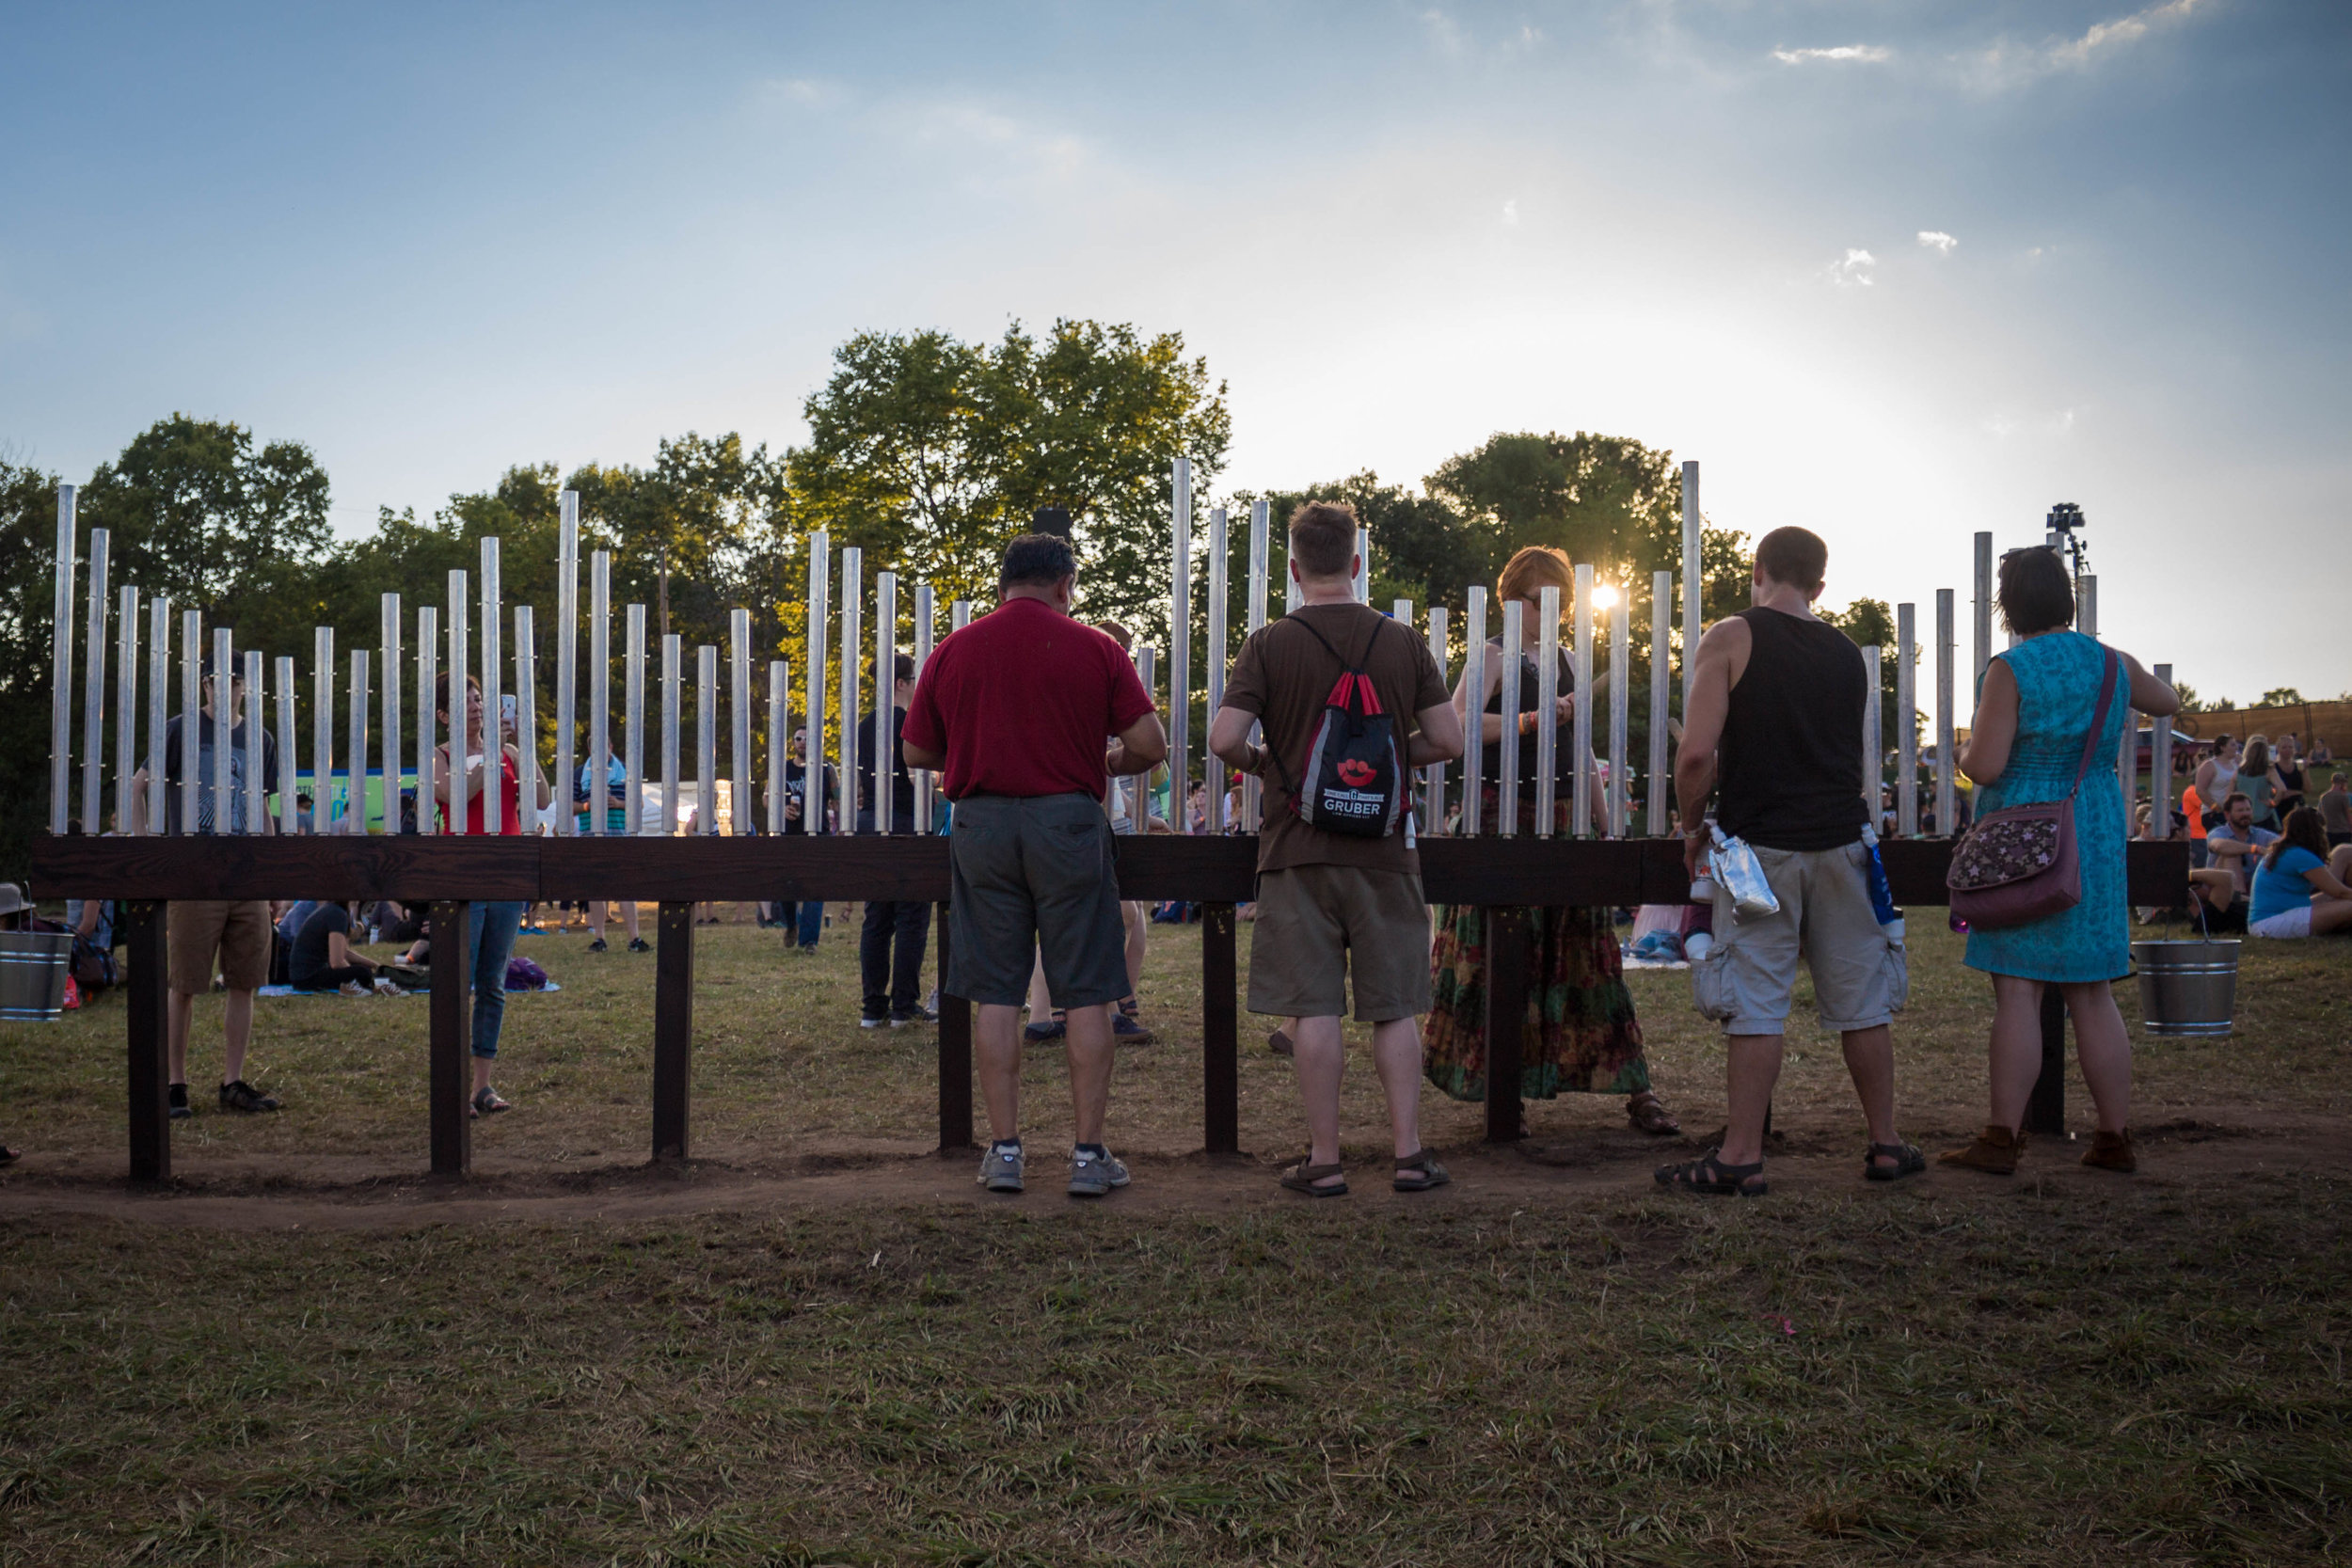 MUSICAL FENCE -